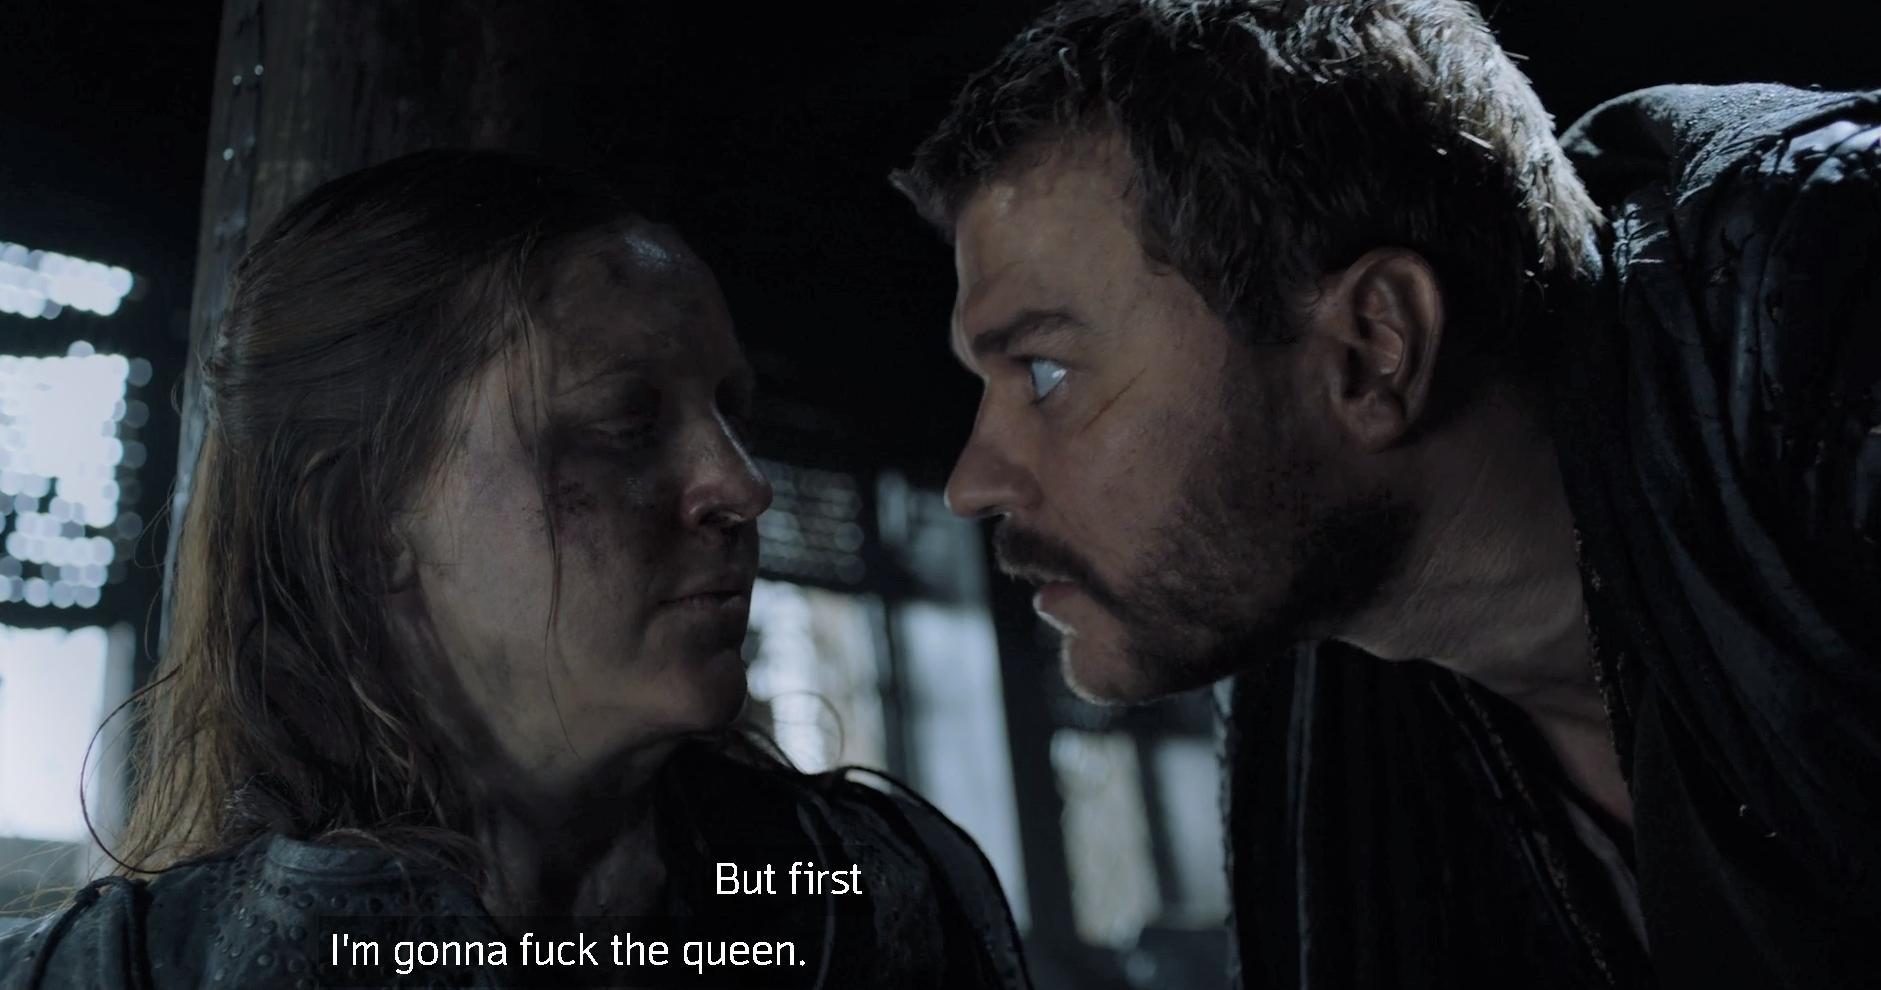 Might be some clever wordplay, whether Euron knows it or not